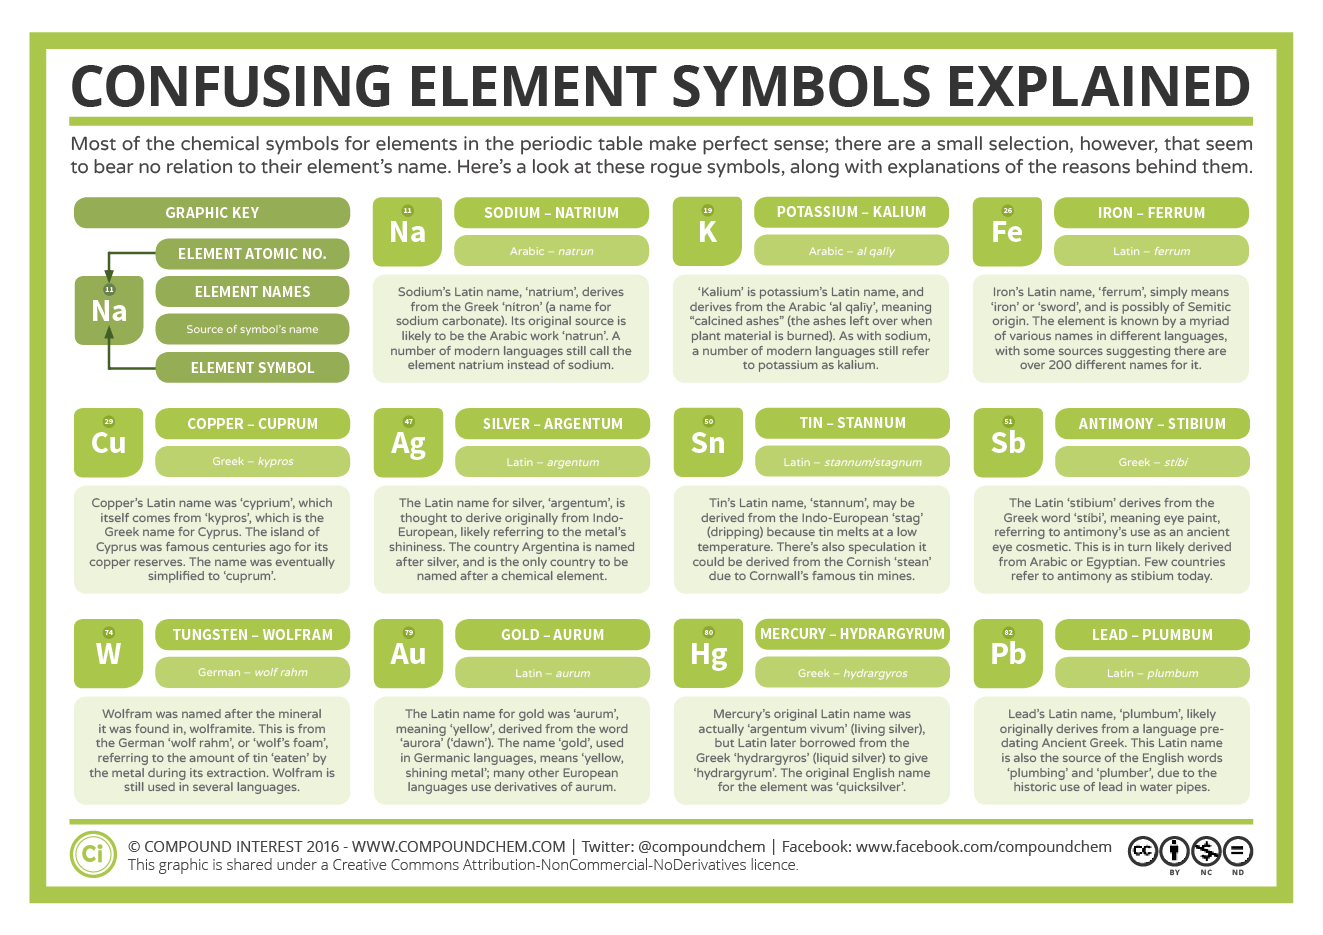 Compound interest element oddities 11 confusing chemical symbols 11 confusing chemical element symbols explained urtaz Gallery